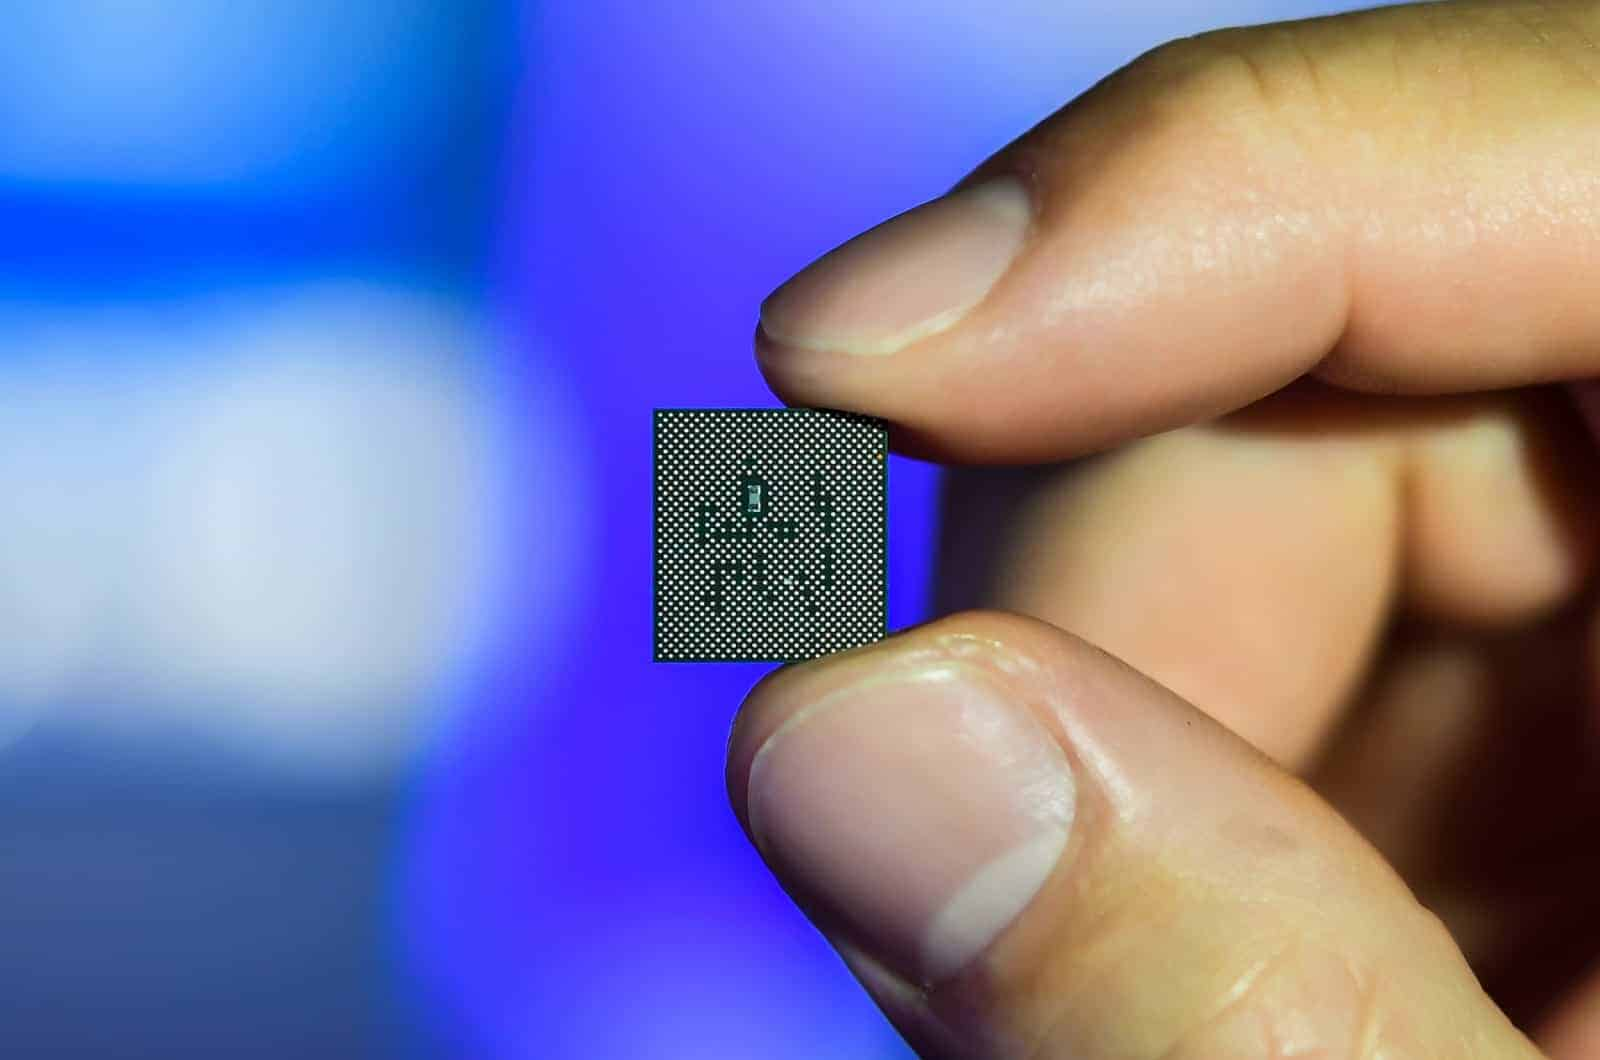 Qualcomm Snapdragon 765 5G Chip In Hand 01